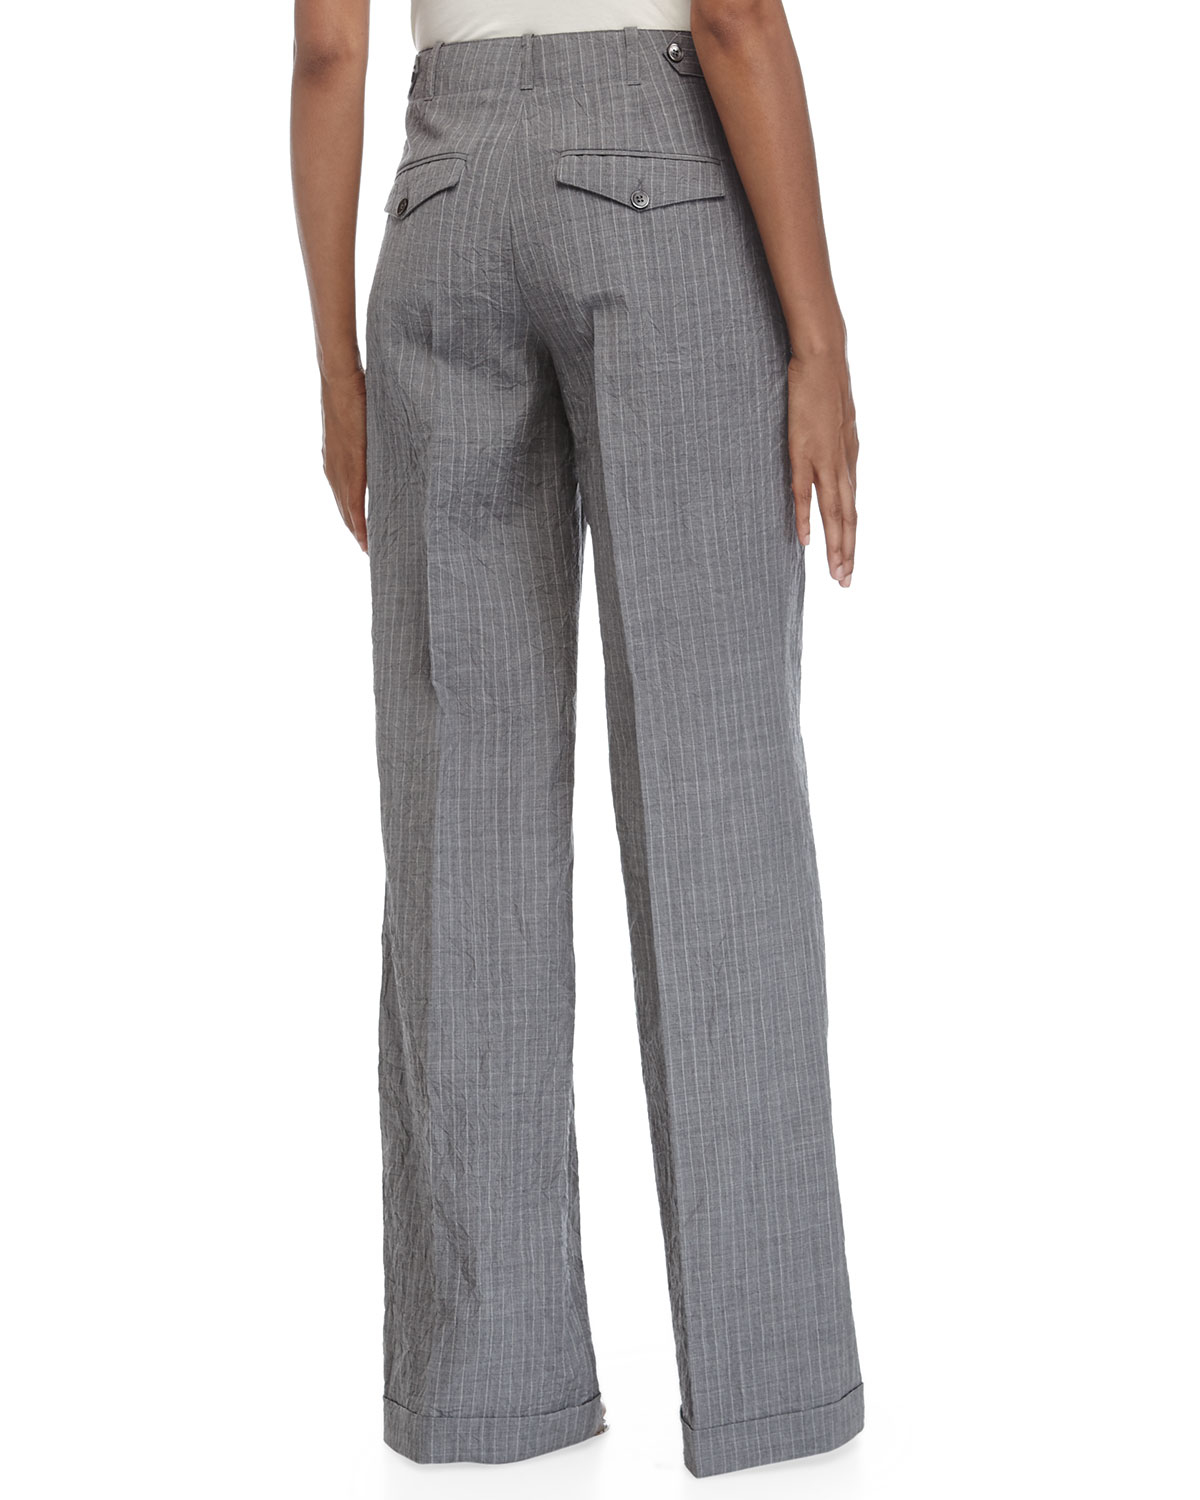 Michael kors Cuffed Wide-Leg Pants in Gray | Lyst